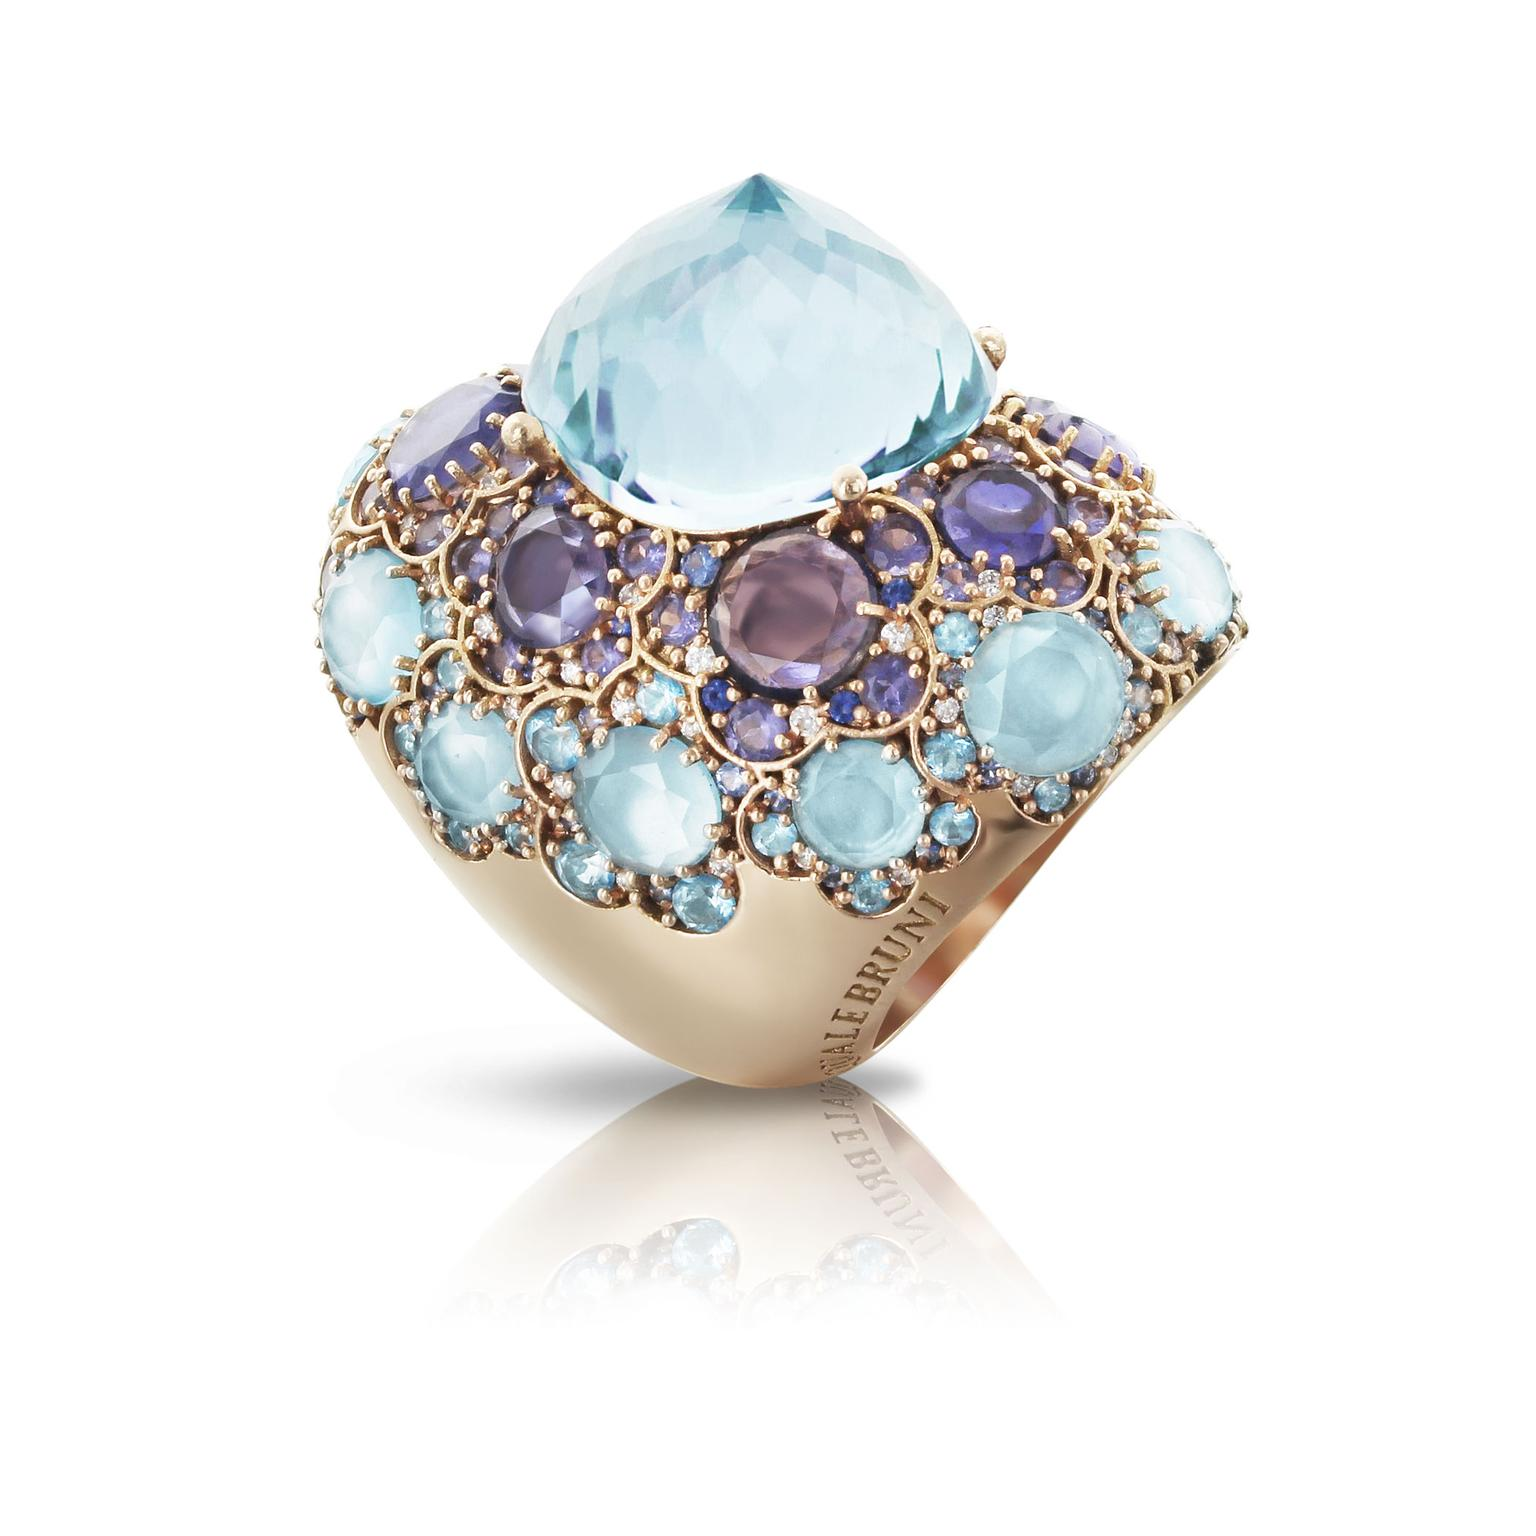 Pasquale Bruni Lady Taj blue topaz ring